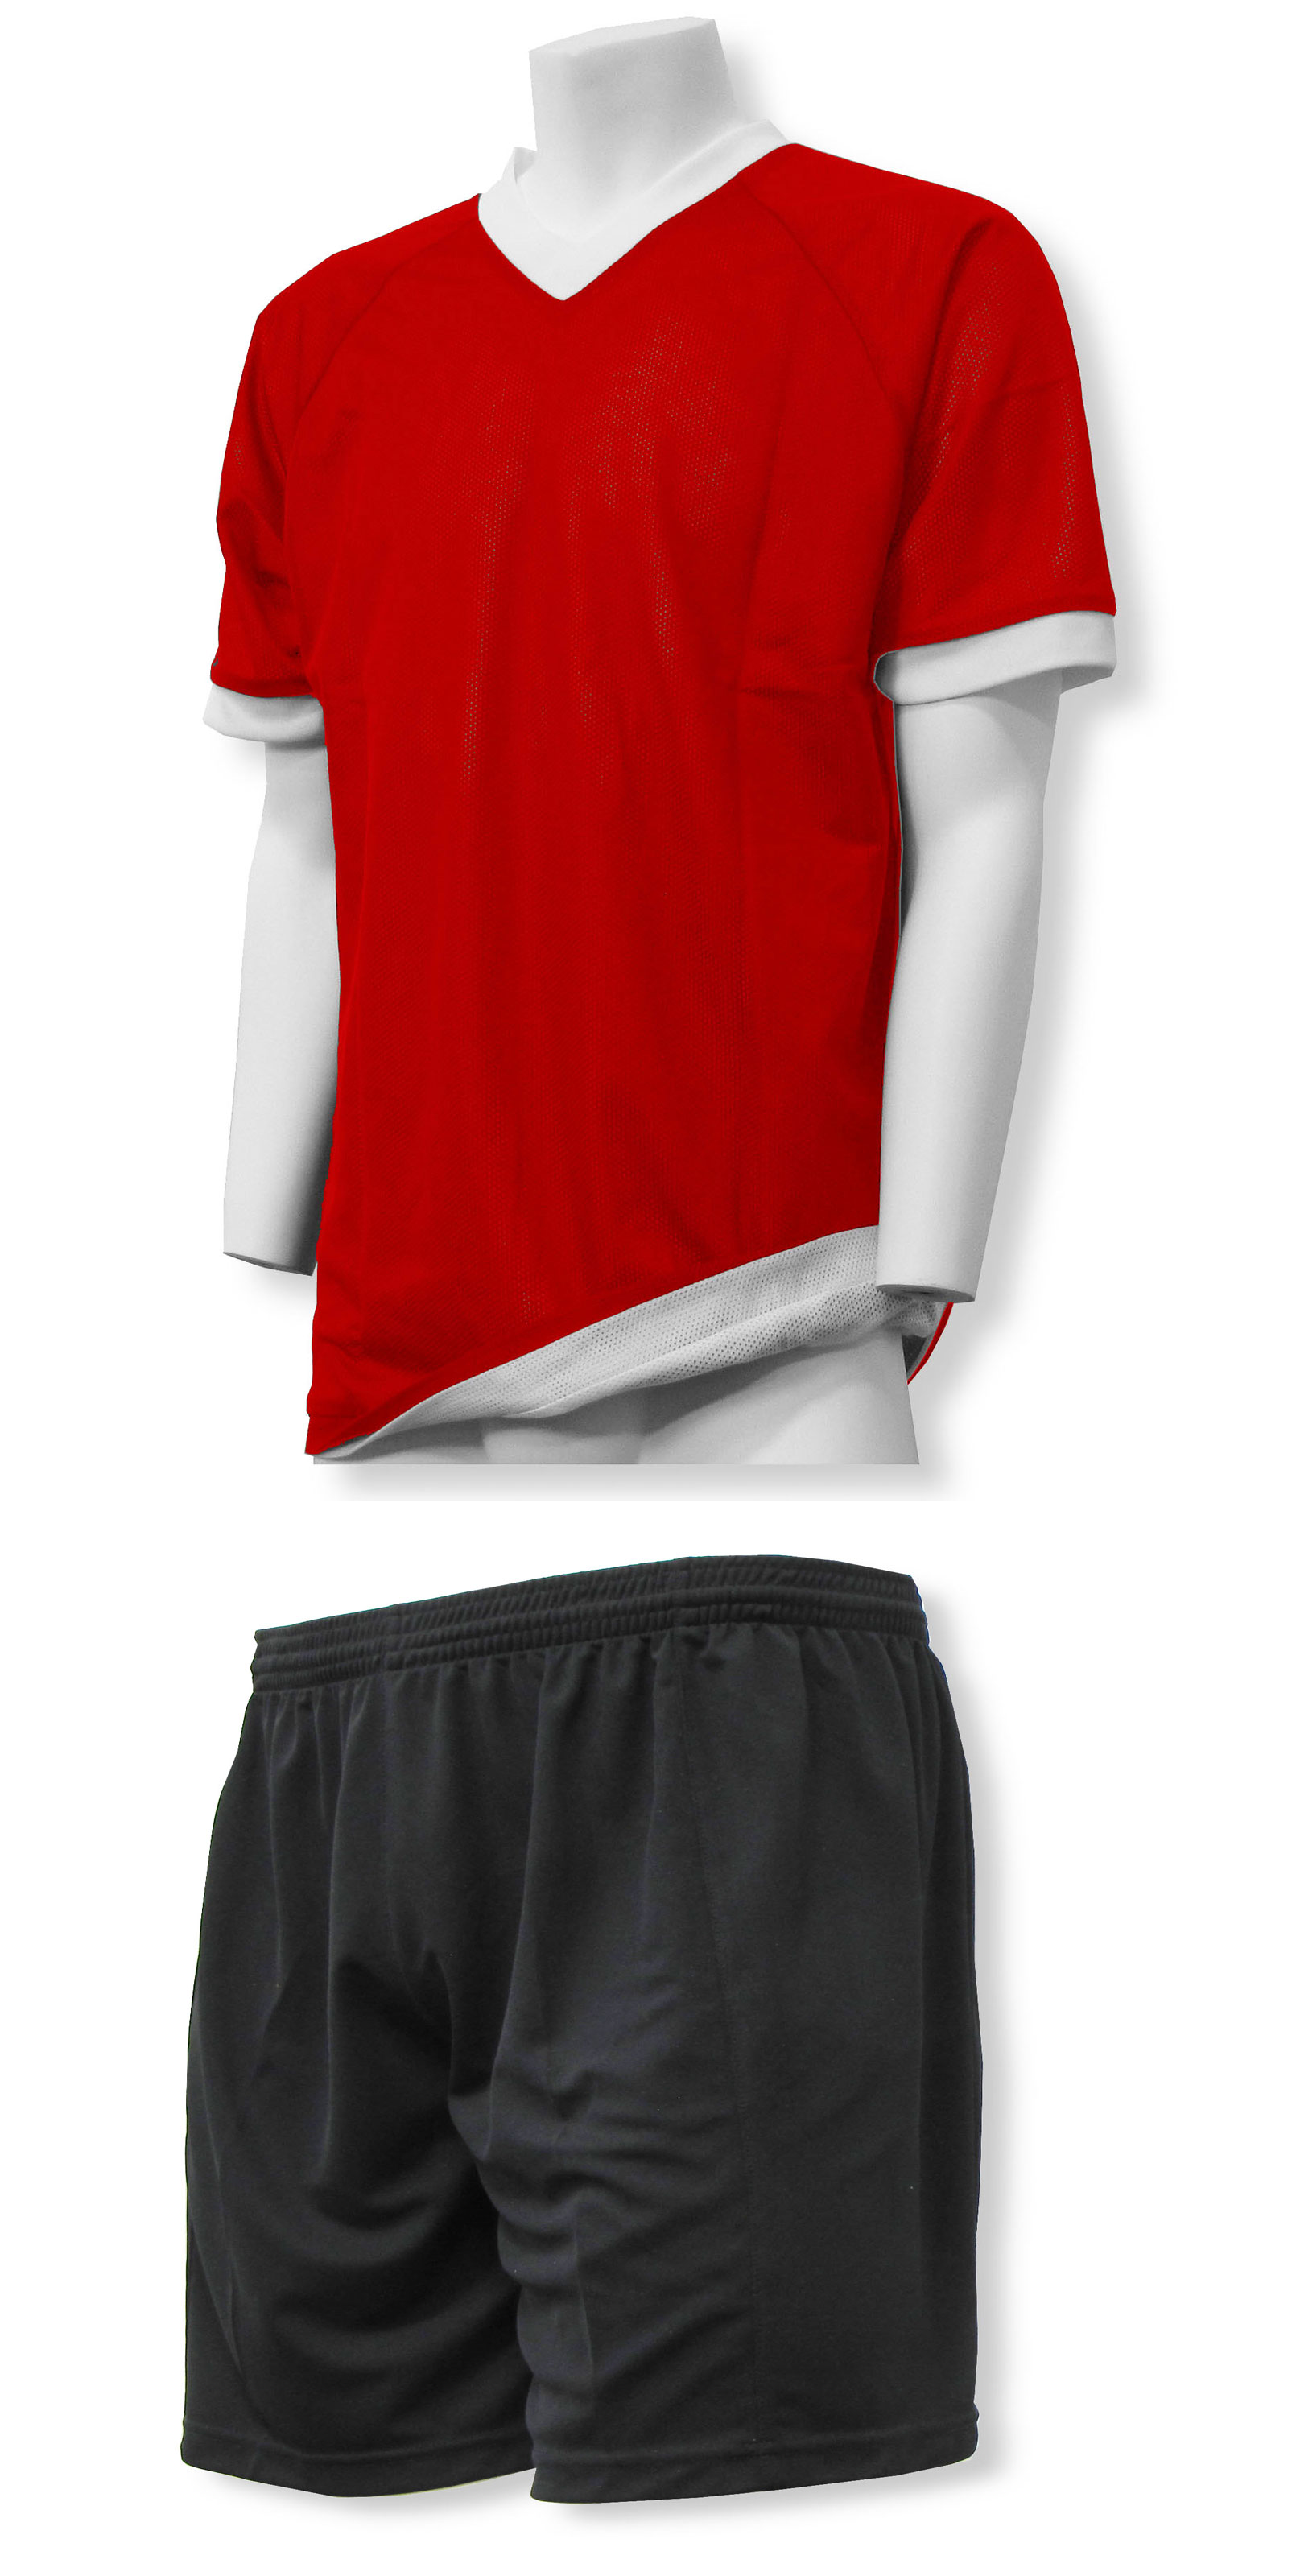 Reversible sports uniform jersey in red/white with black shorts by Code Four Athletics